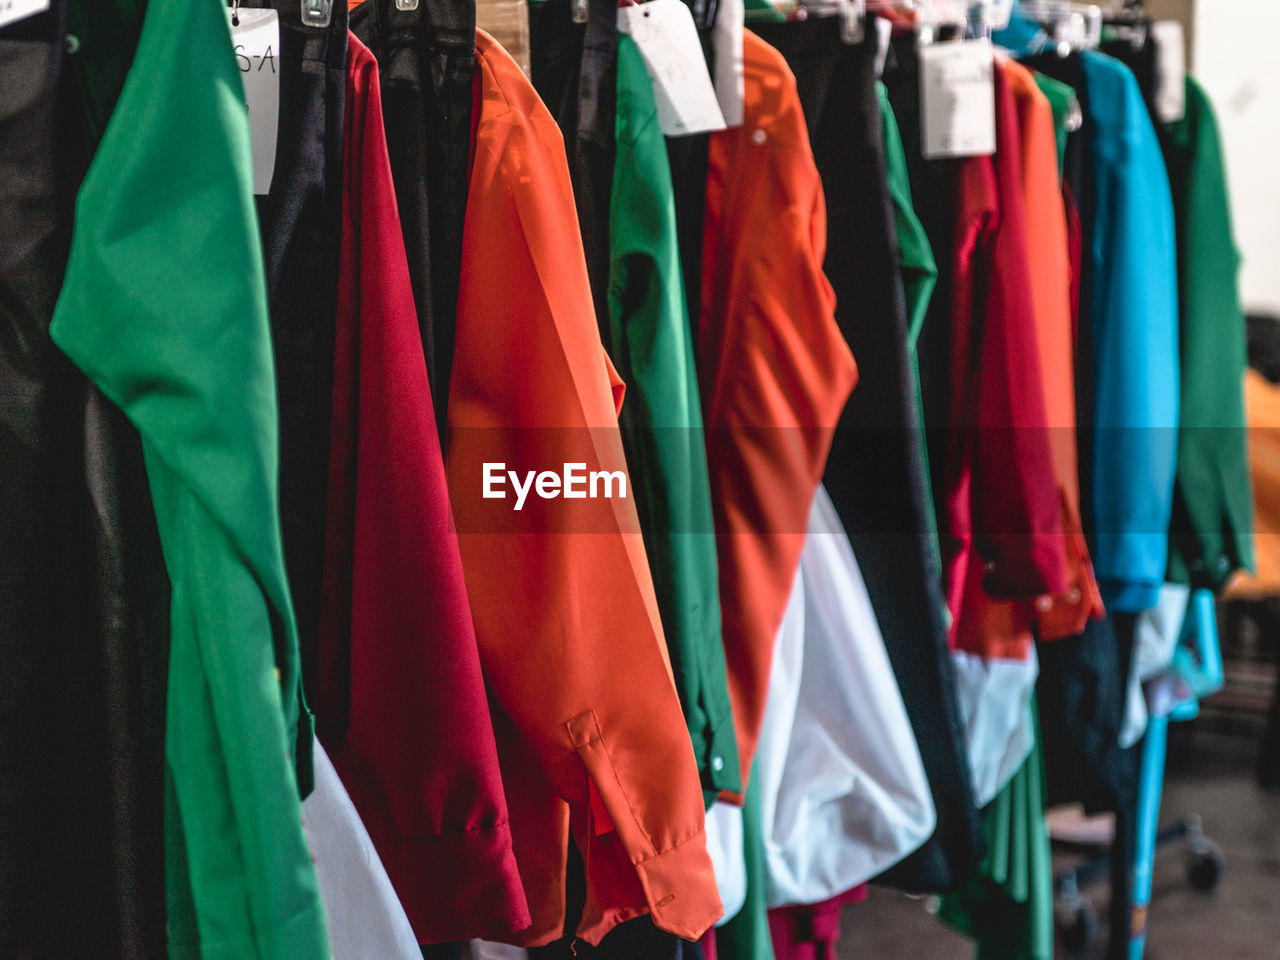 Various Clothing For Sale In Store